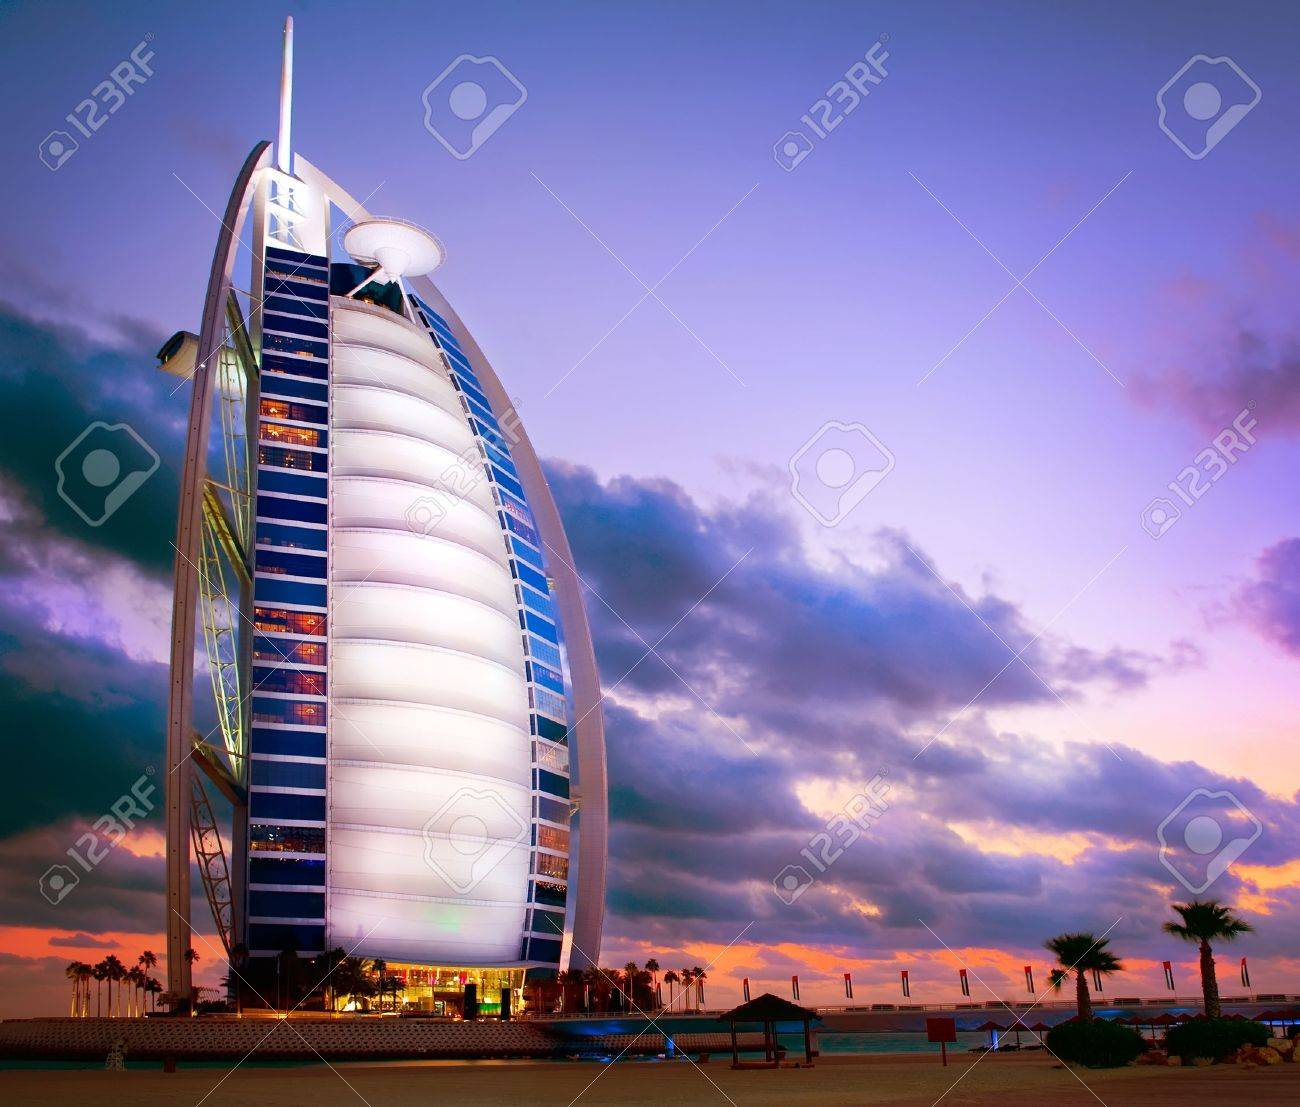 Burj Al Arab hotel in Dubai  United Arab Emirates Stock Photo - 17776937